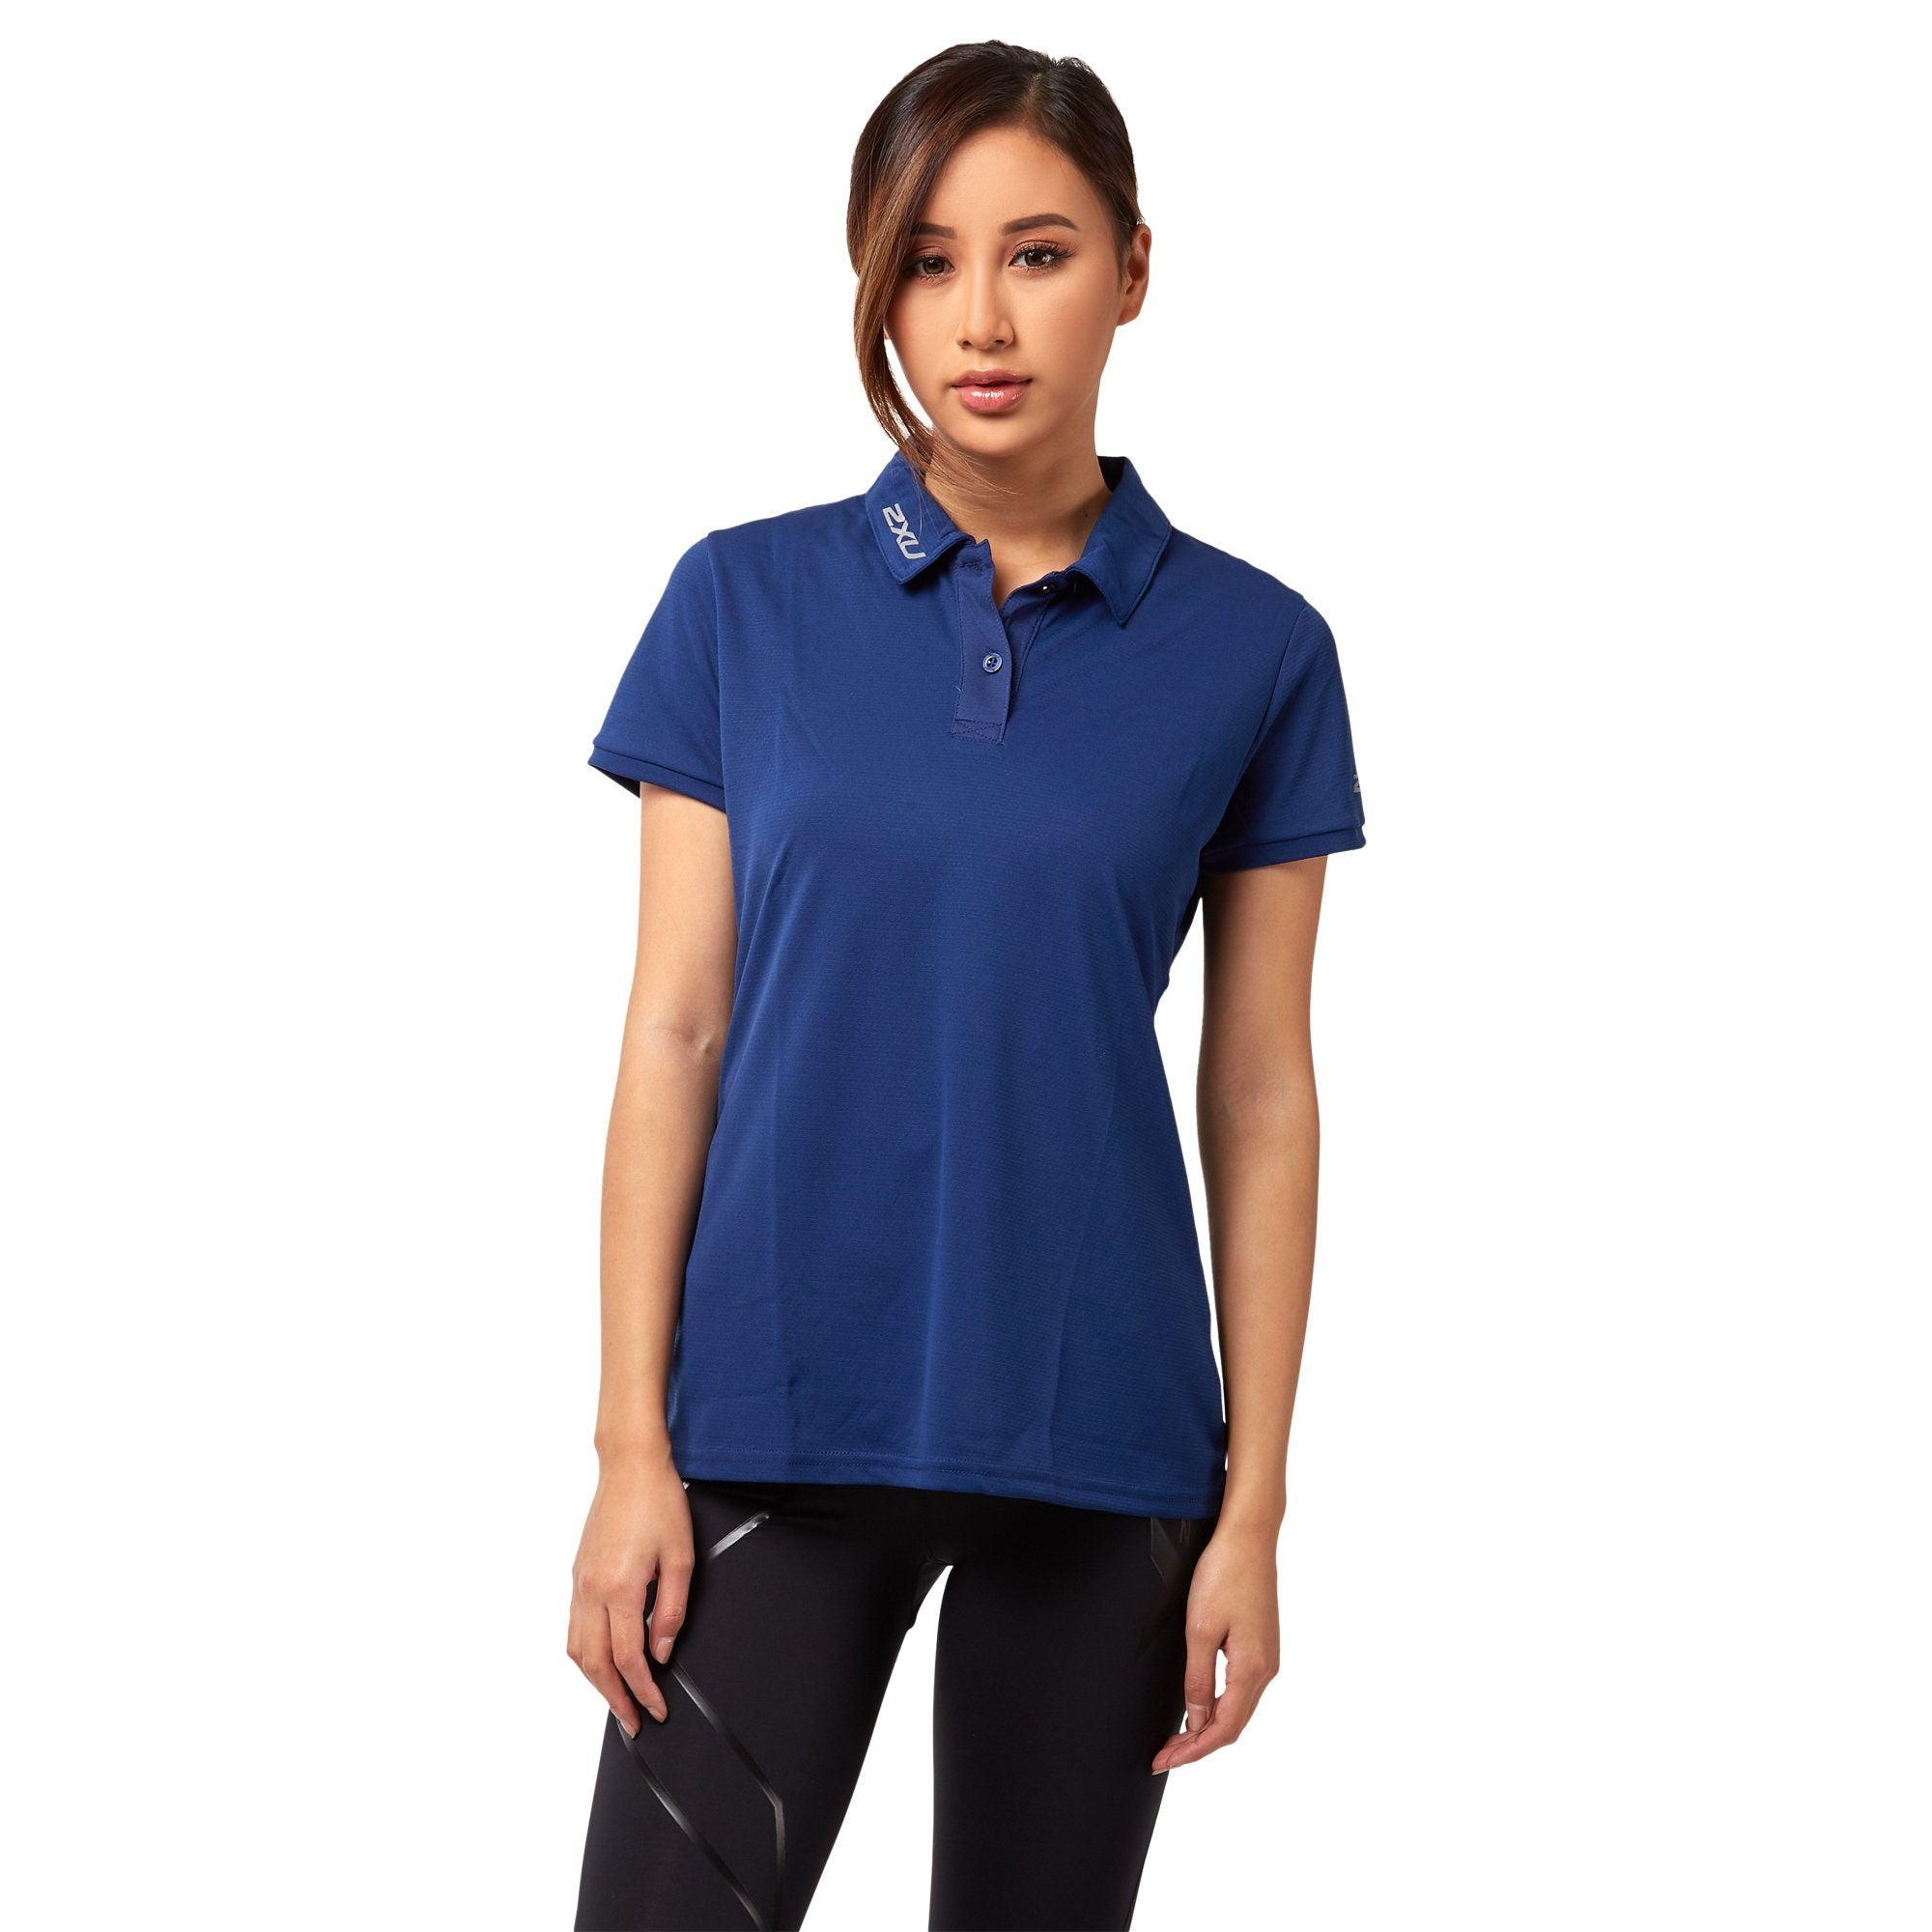 2XU Women's ACTIVE Polo - Navy Apparel 2XU